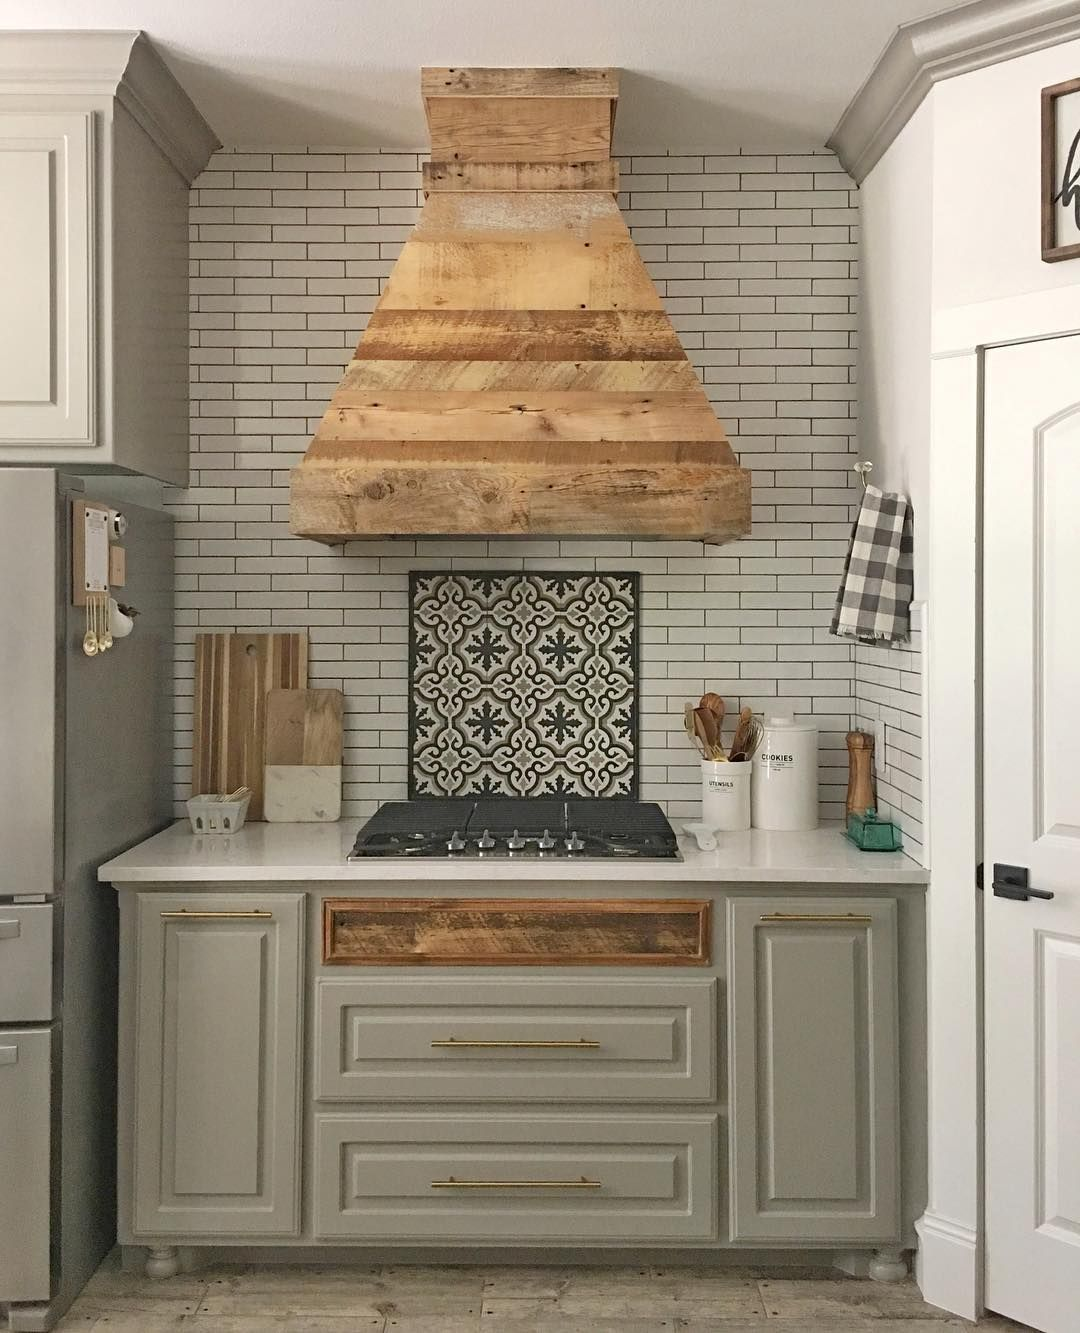 One of my favorite builds yet shanty2chic kitchen for Vent hoods for kitchens